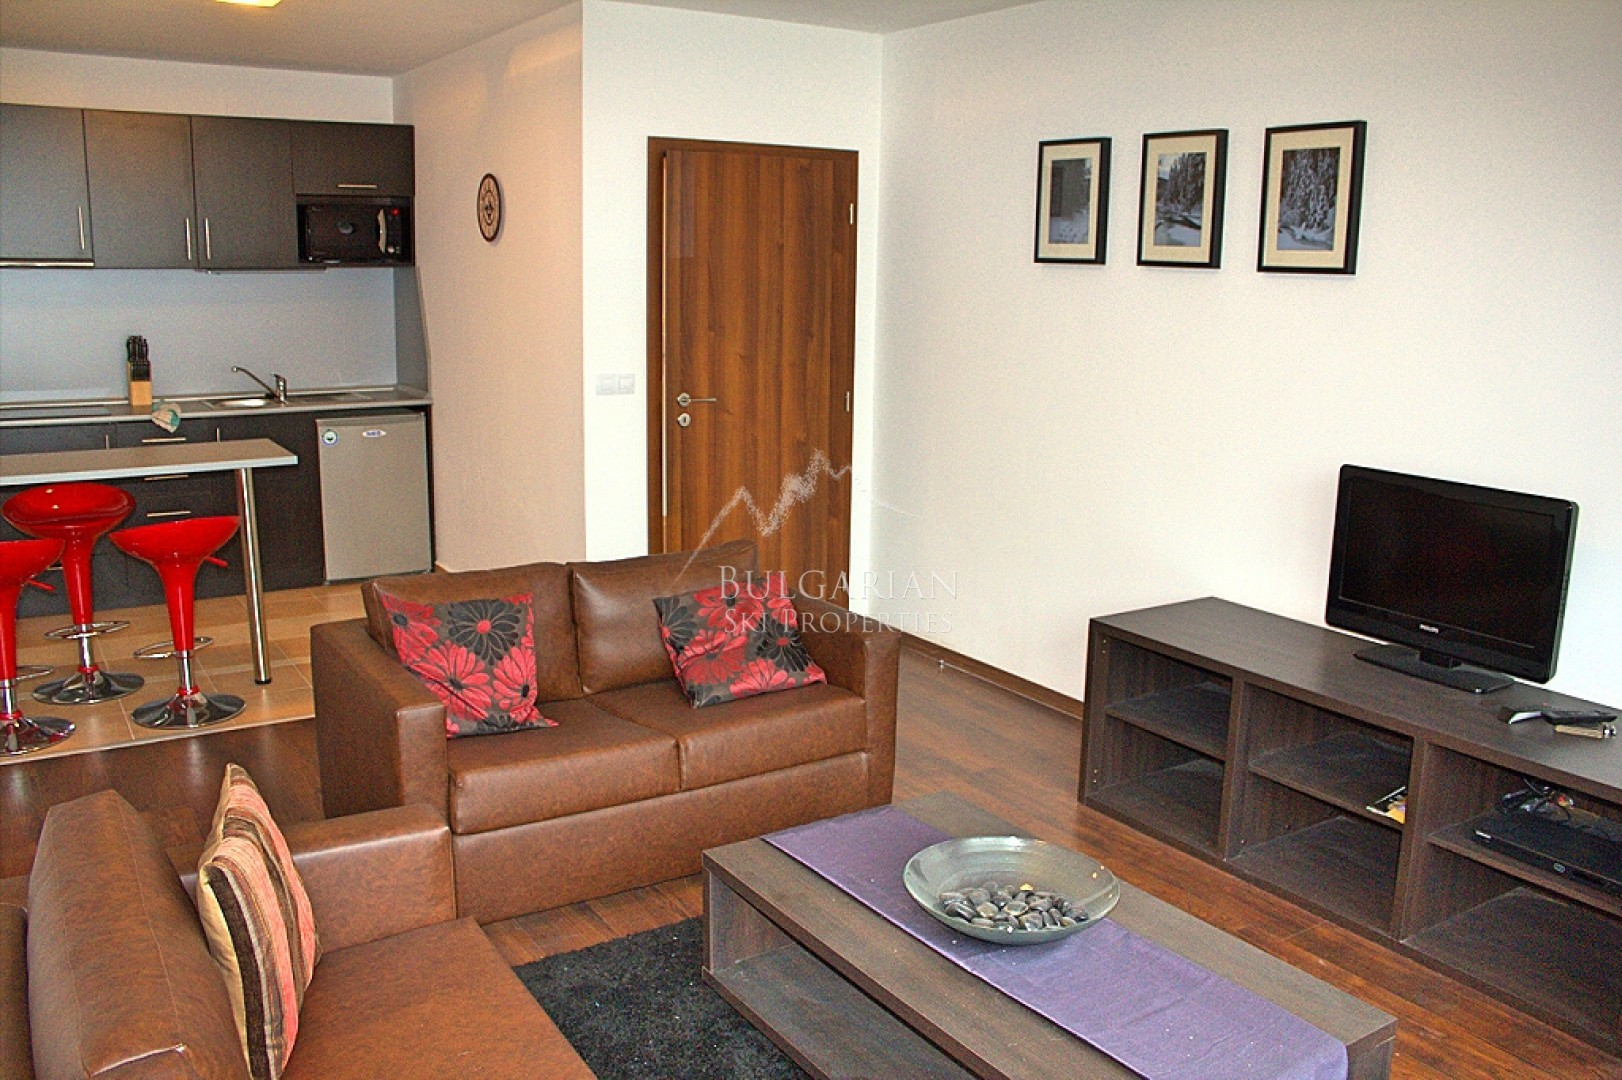 Winslow Infinity & Spa, Bansko: furnished one-bedroom apartment for sale